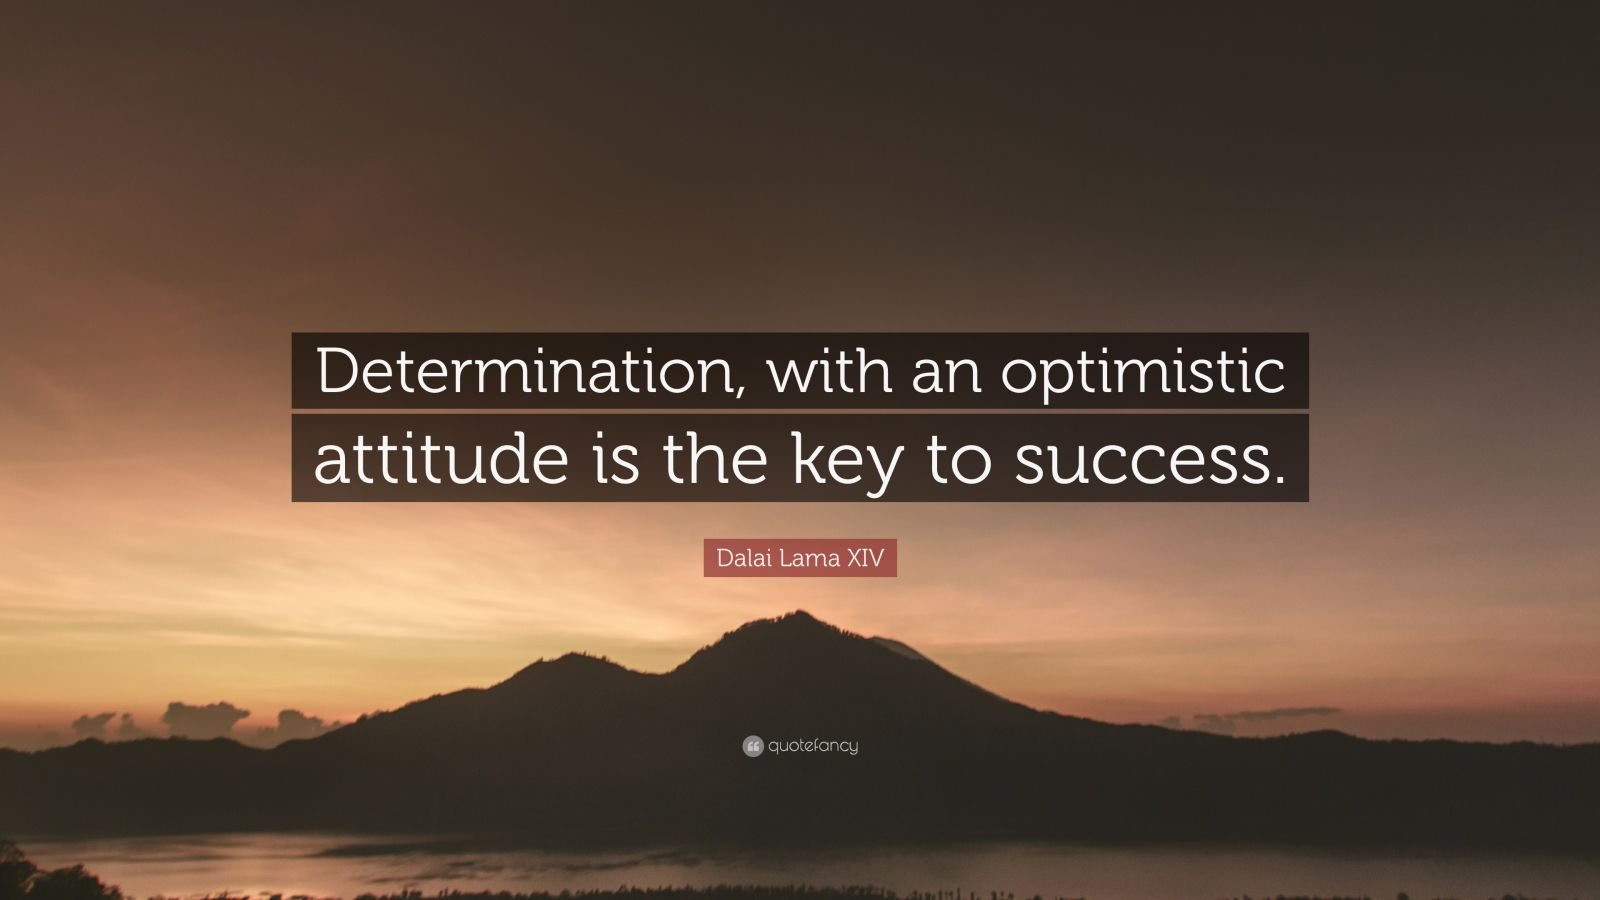 essay on determination is the key to success With courage and hope our society can forget the marketer's inadequate definition of success and work to attain true success by modeling respect, appreciation, integrity, and patience - the keys to happiness and success.